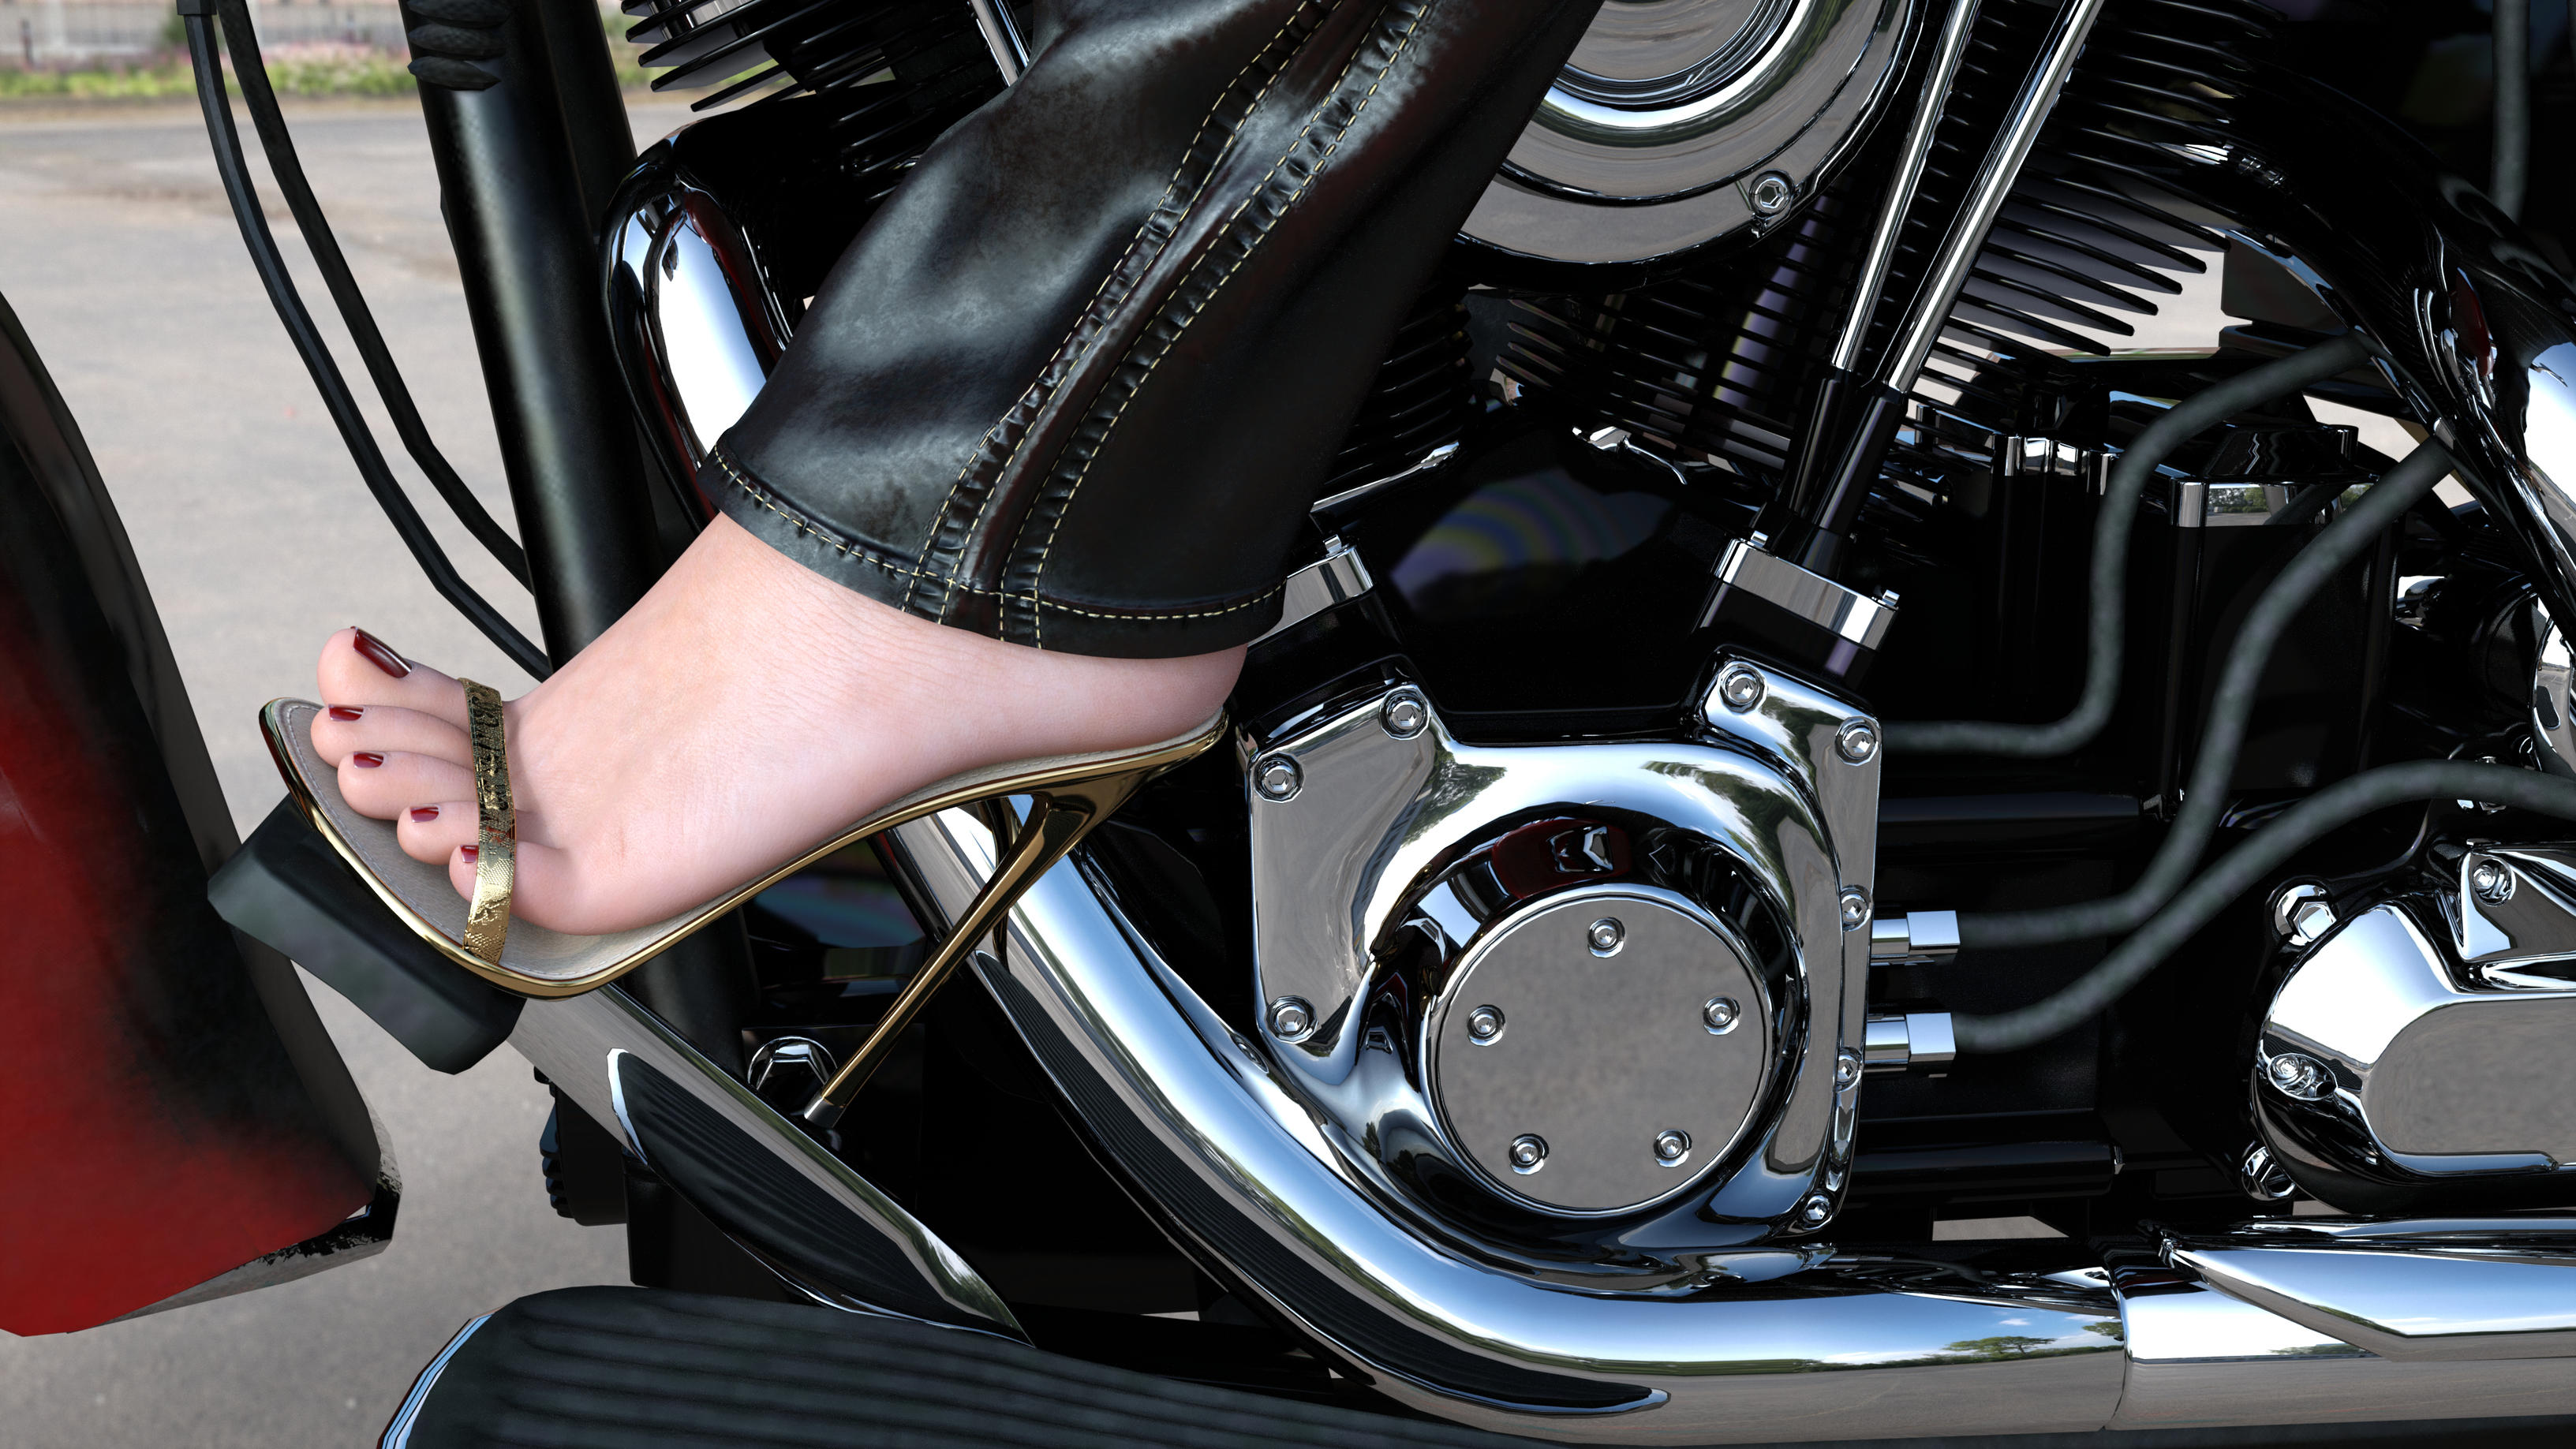 Female pedal pumping